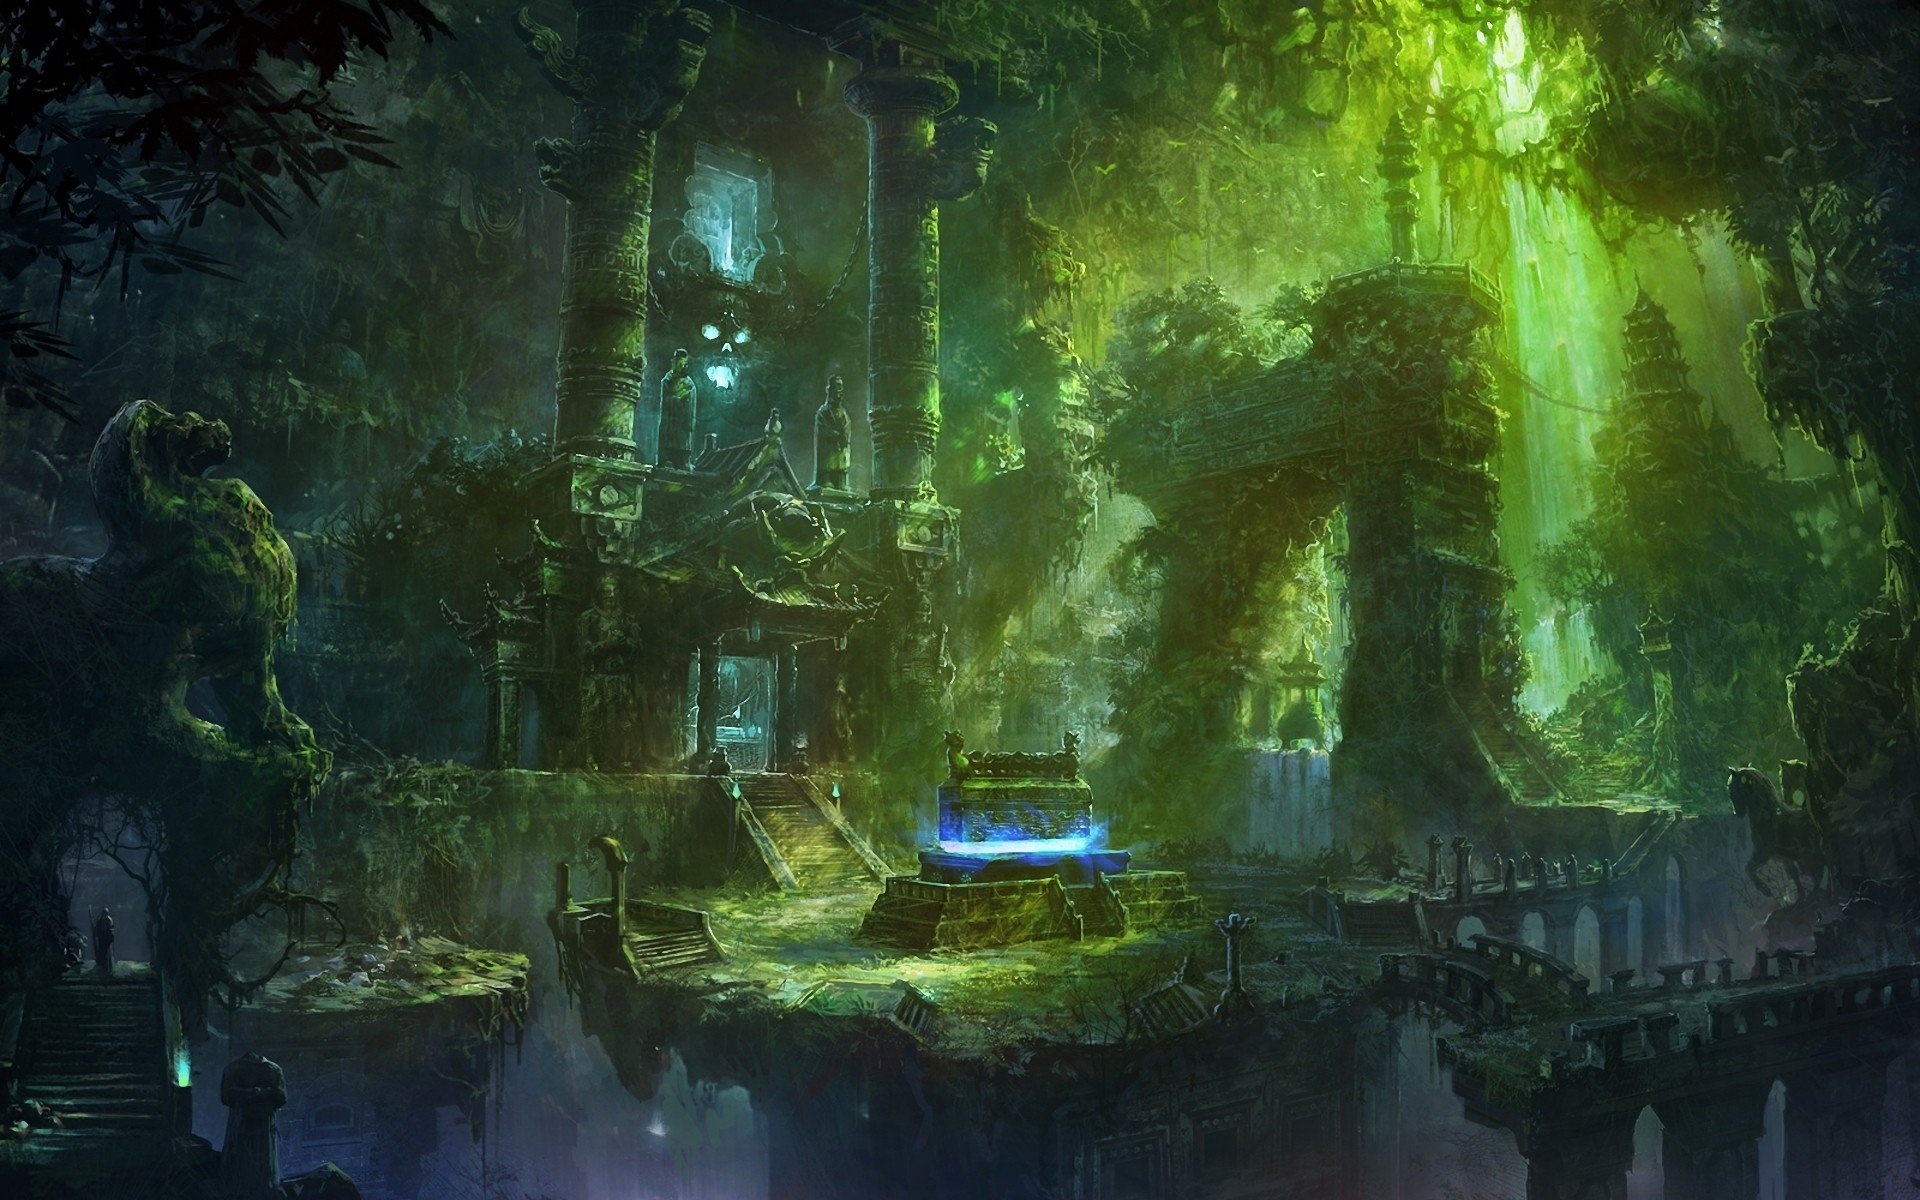 Wallpaper Skull 3d Fantasy Art Spooky Temple Jungle Nature Skull Magic